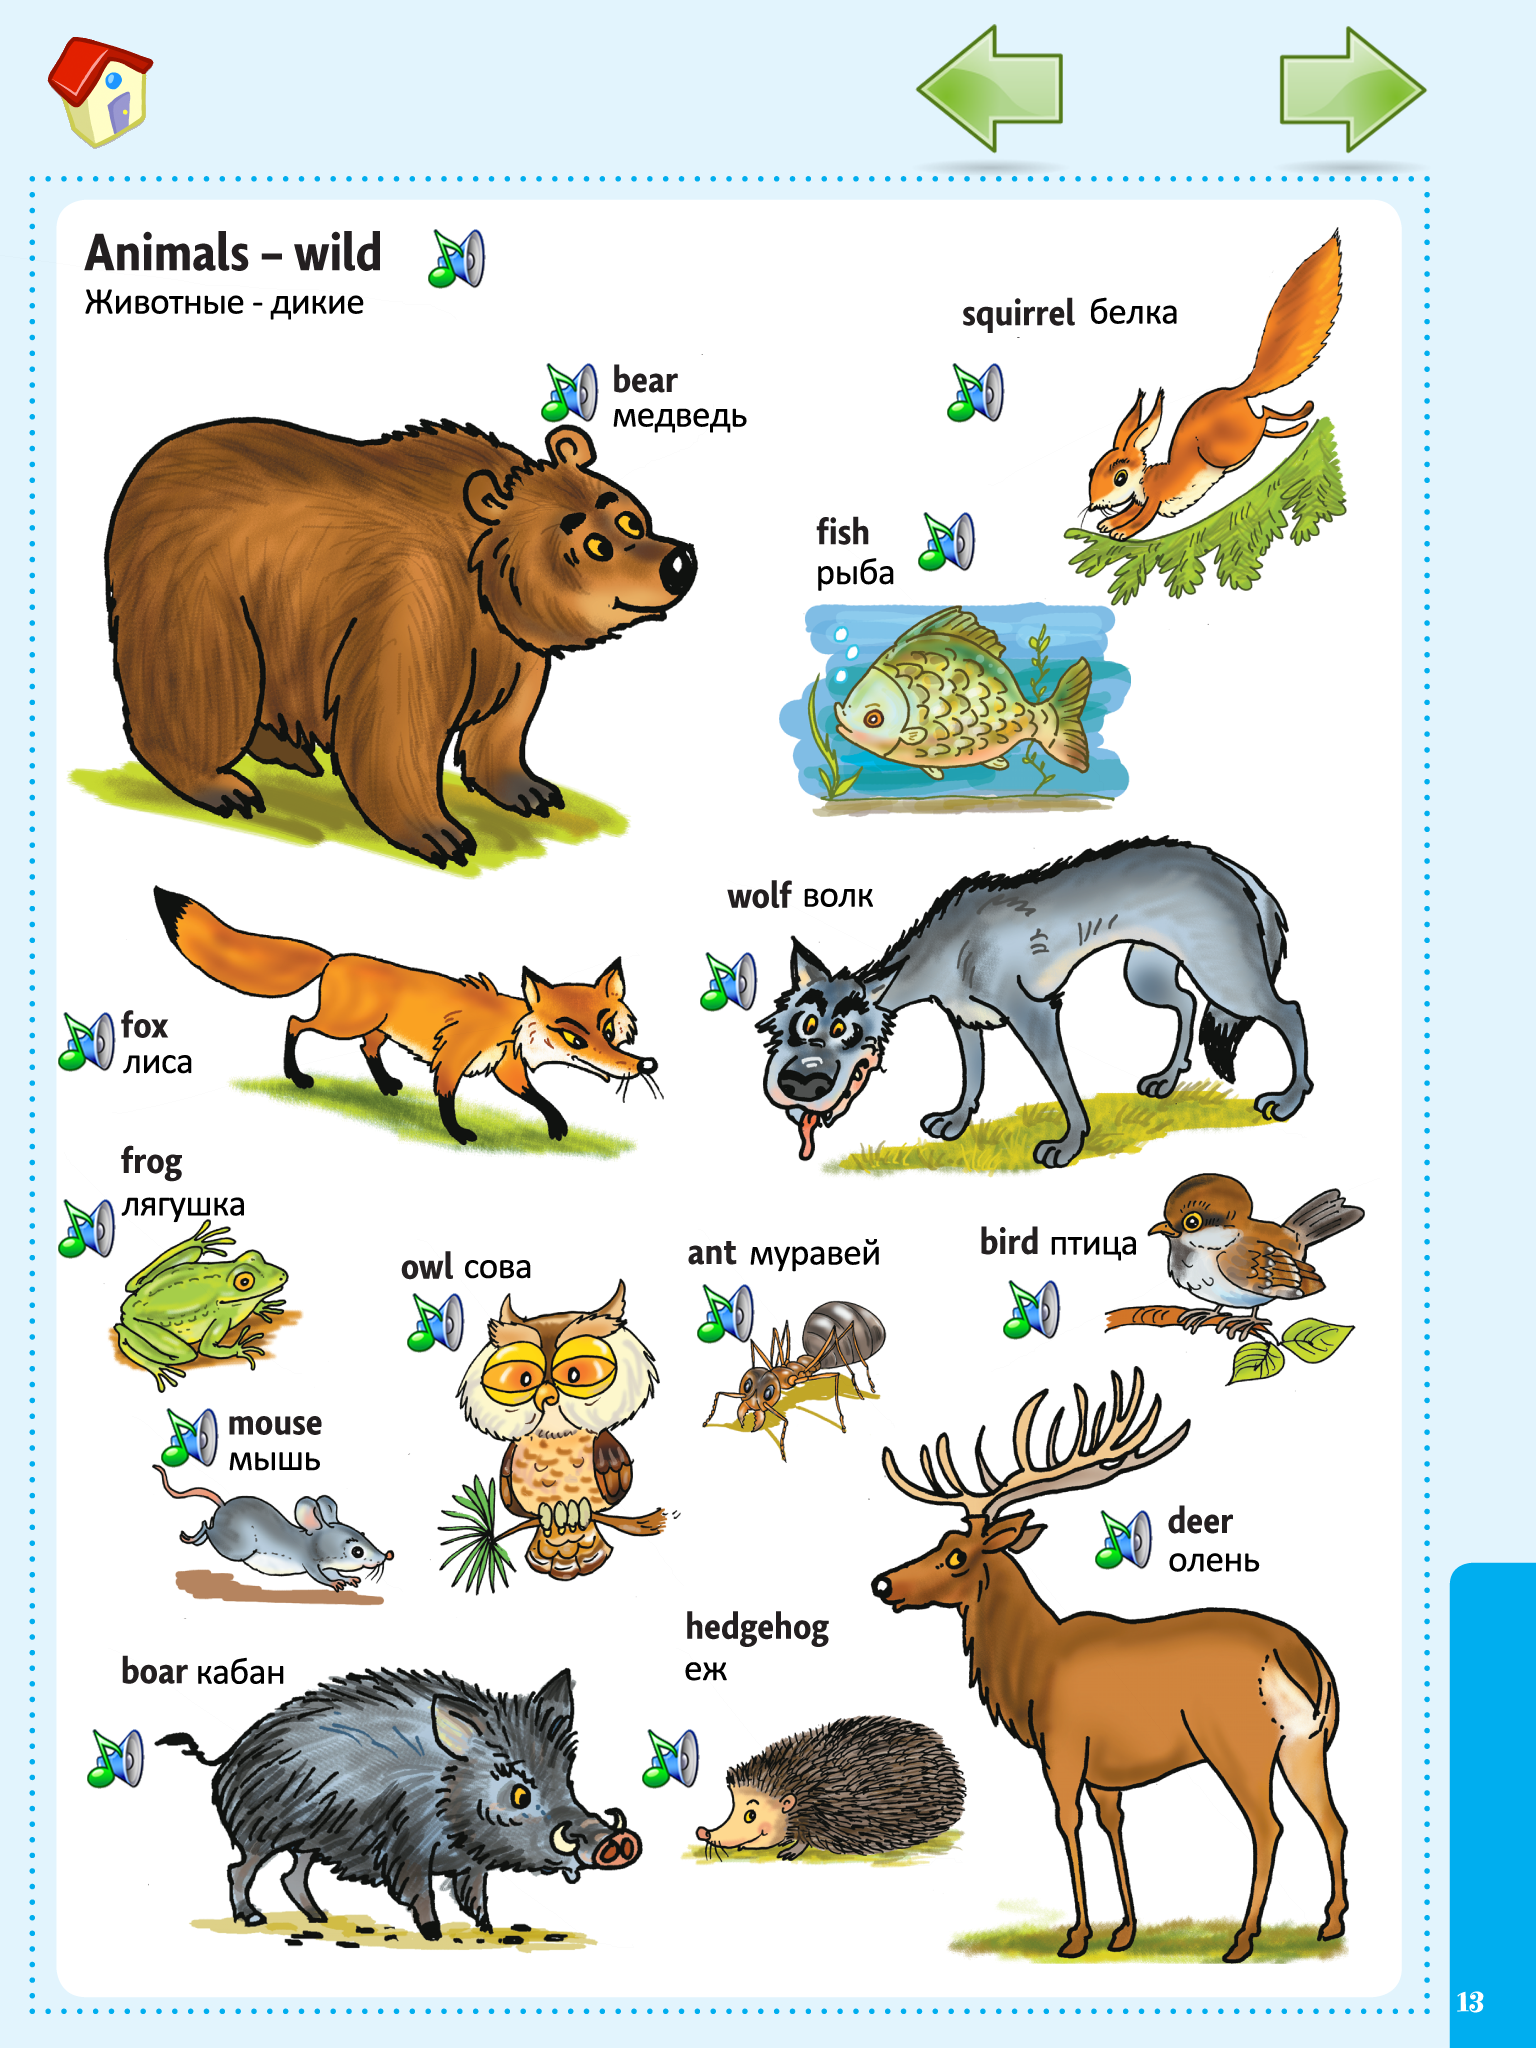 Picture Dictionary For Kids In English